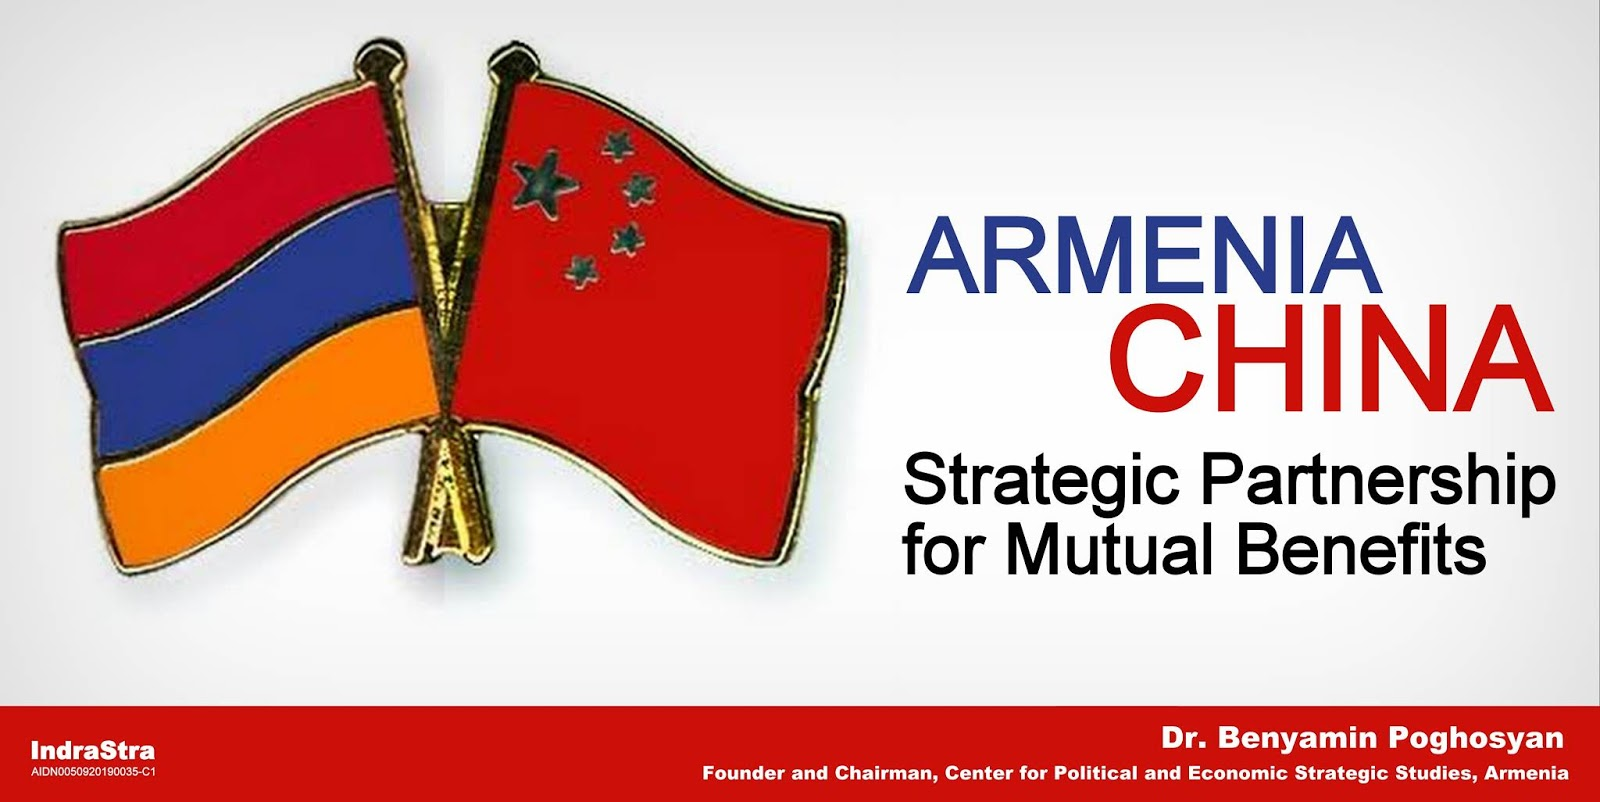 Armenia–China: Strategic Partnership for Mutual Benefits